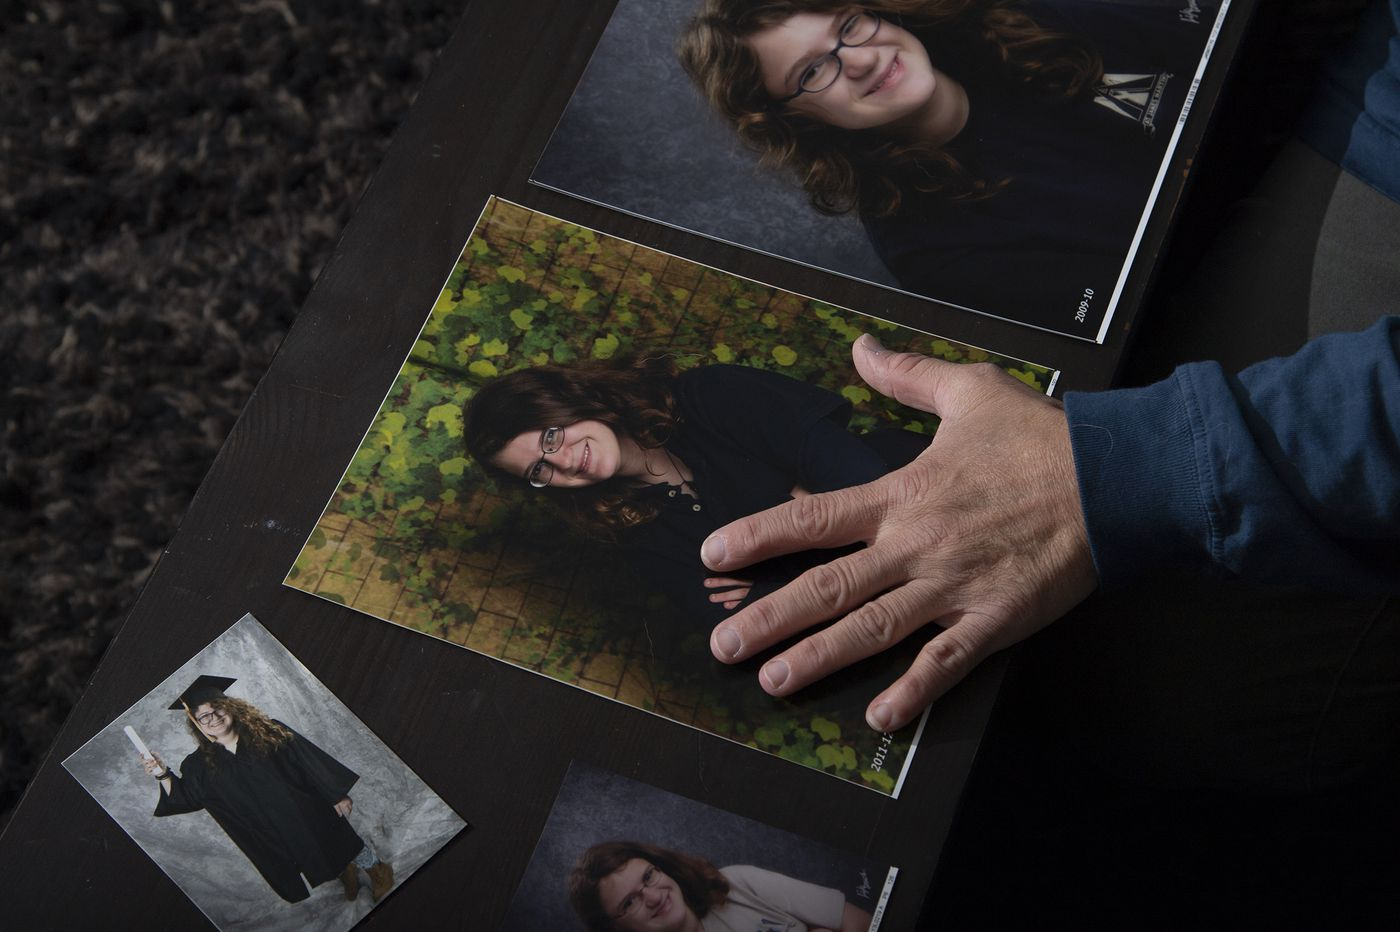 Bullied in school, a Northeast Philly woman won a $500,000 judgment. Her case could ripple.